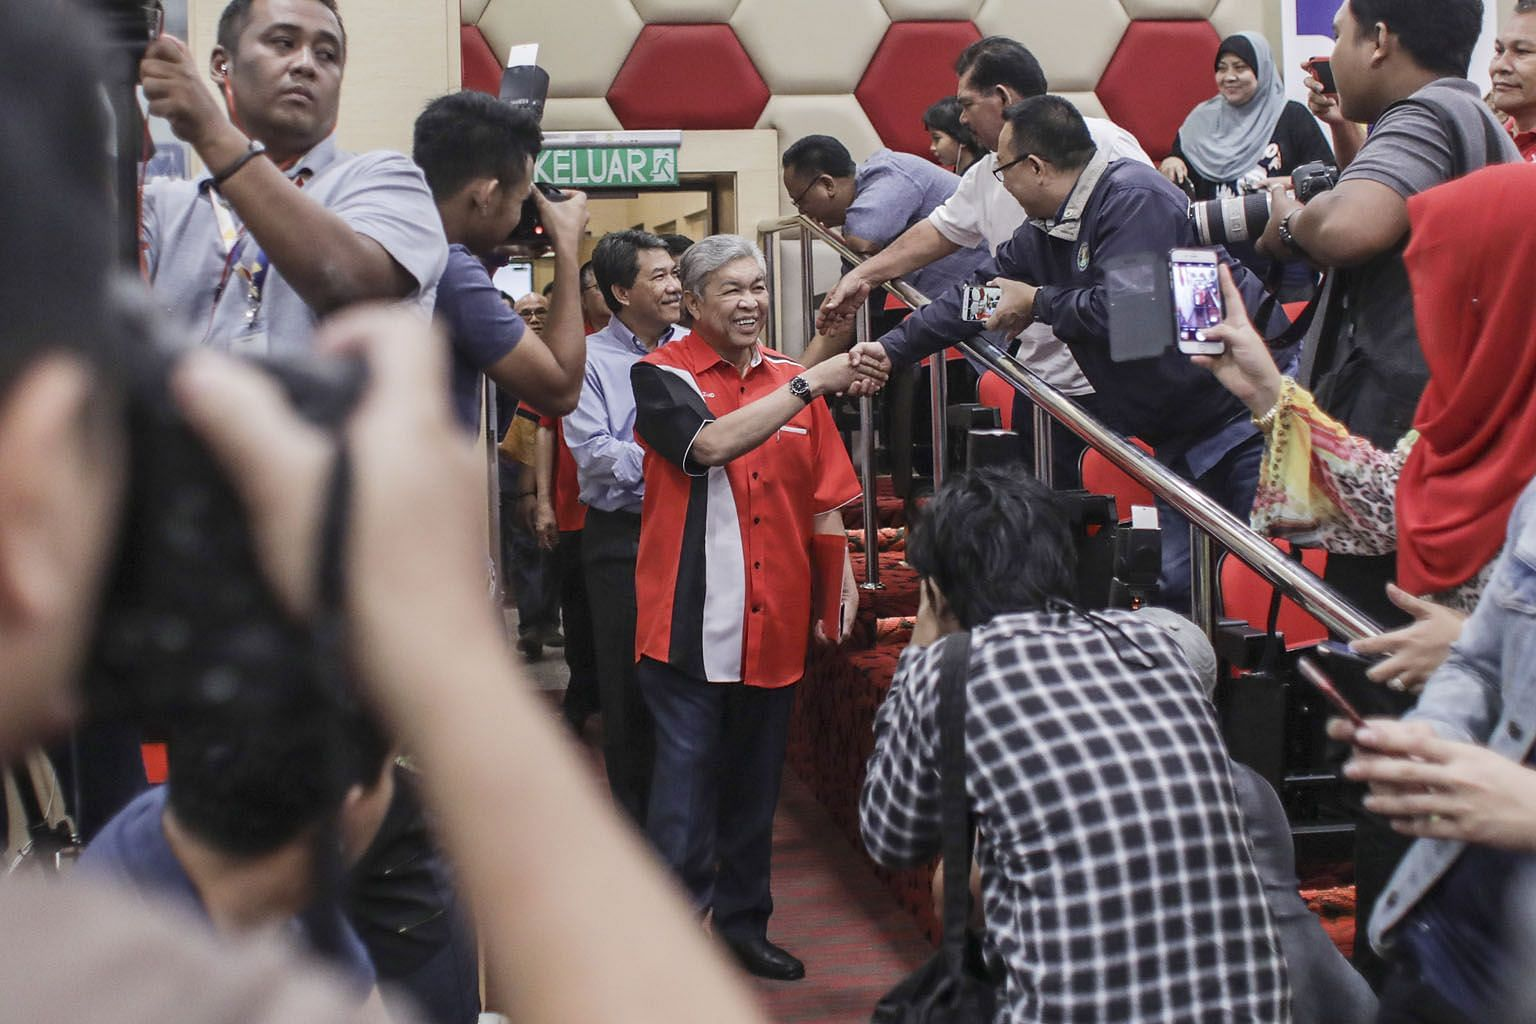 New Umno president Ahmad Zahid Hamidi and his deputy Mohamad Hasan arriving for a press conference in Kuala Lumpur, Malaysia, in July.